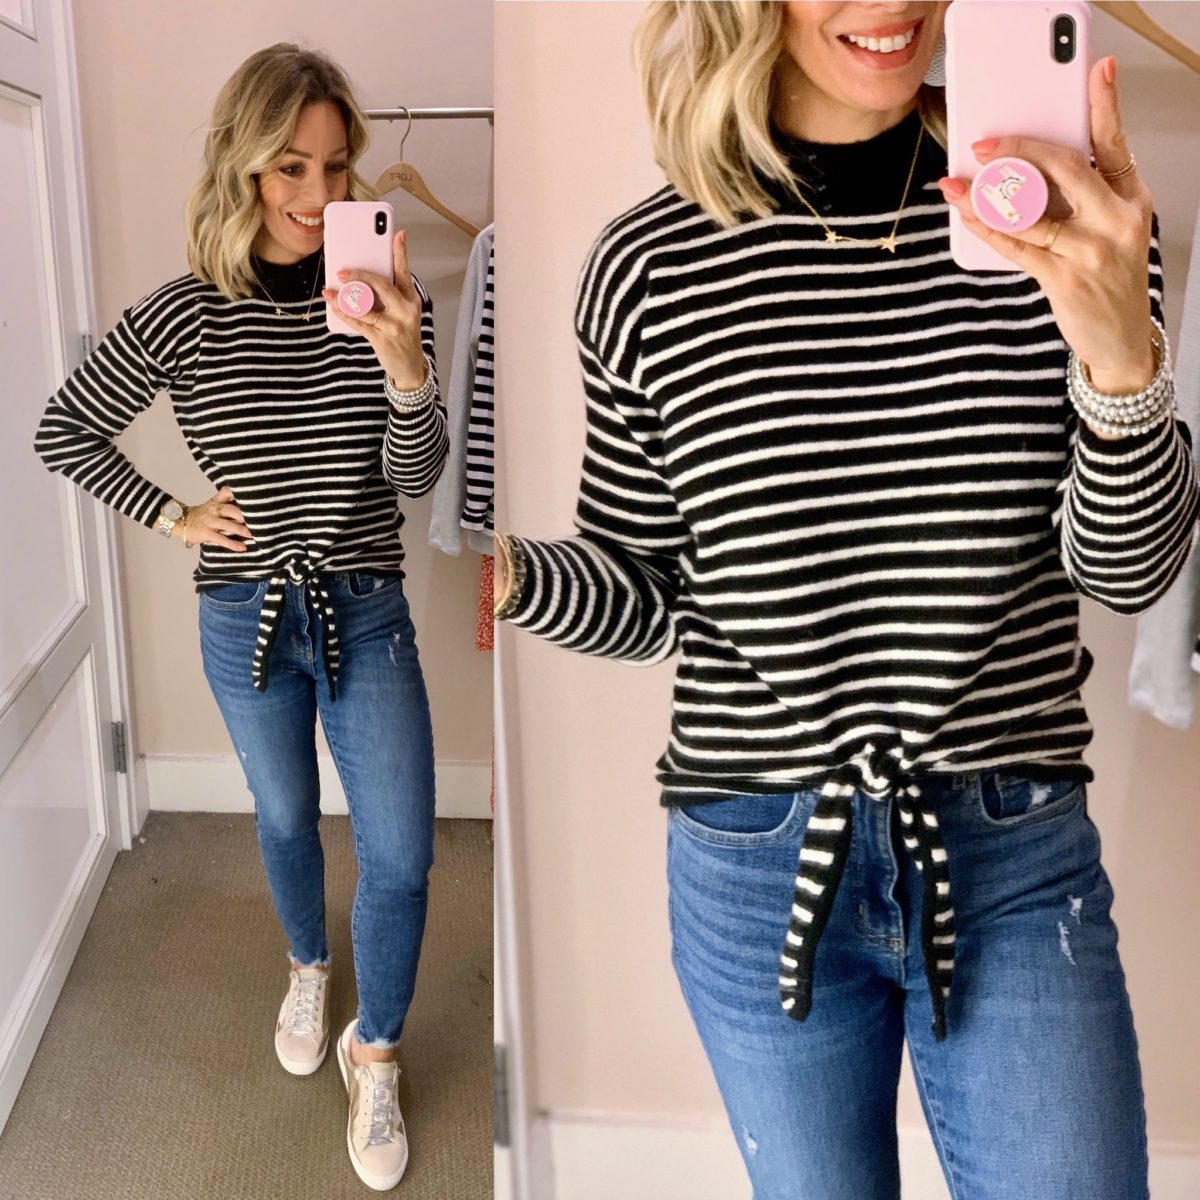 Black and White Stripe Tie Front Top, Skinny Jeans, Star Sneakers